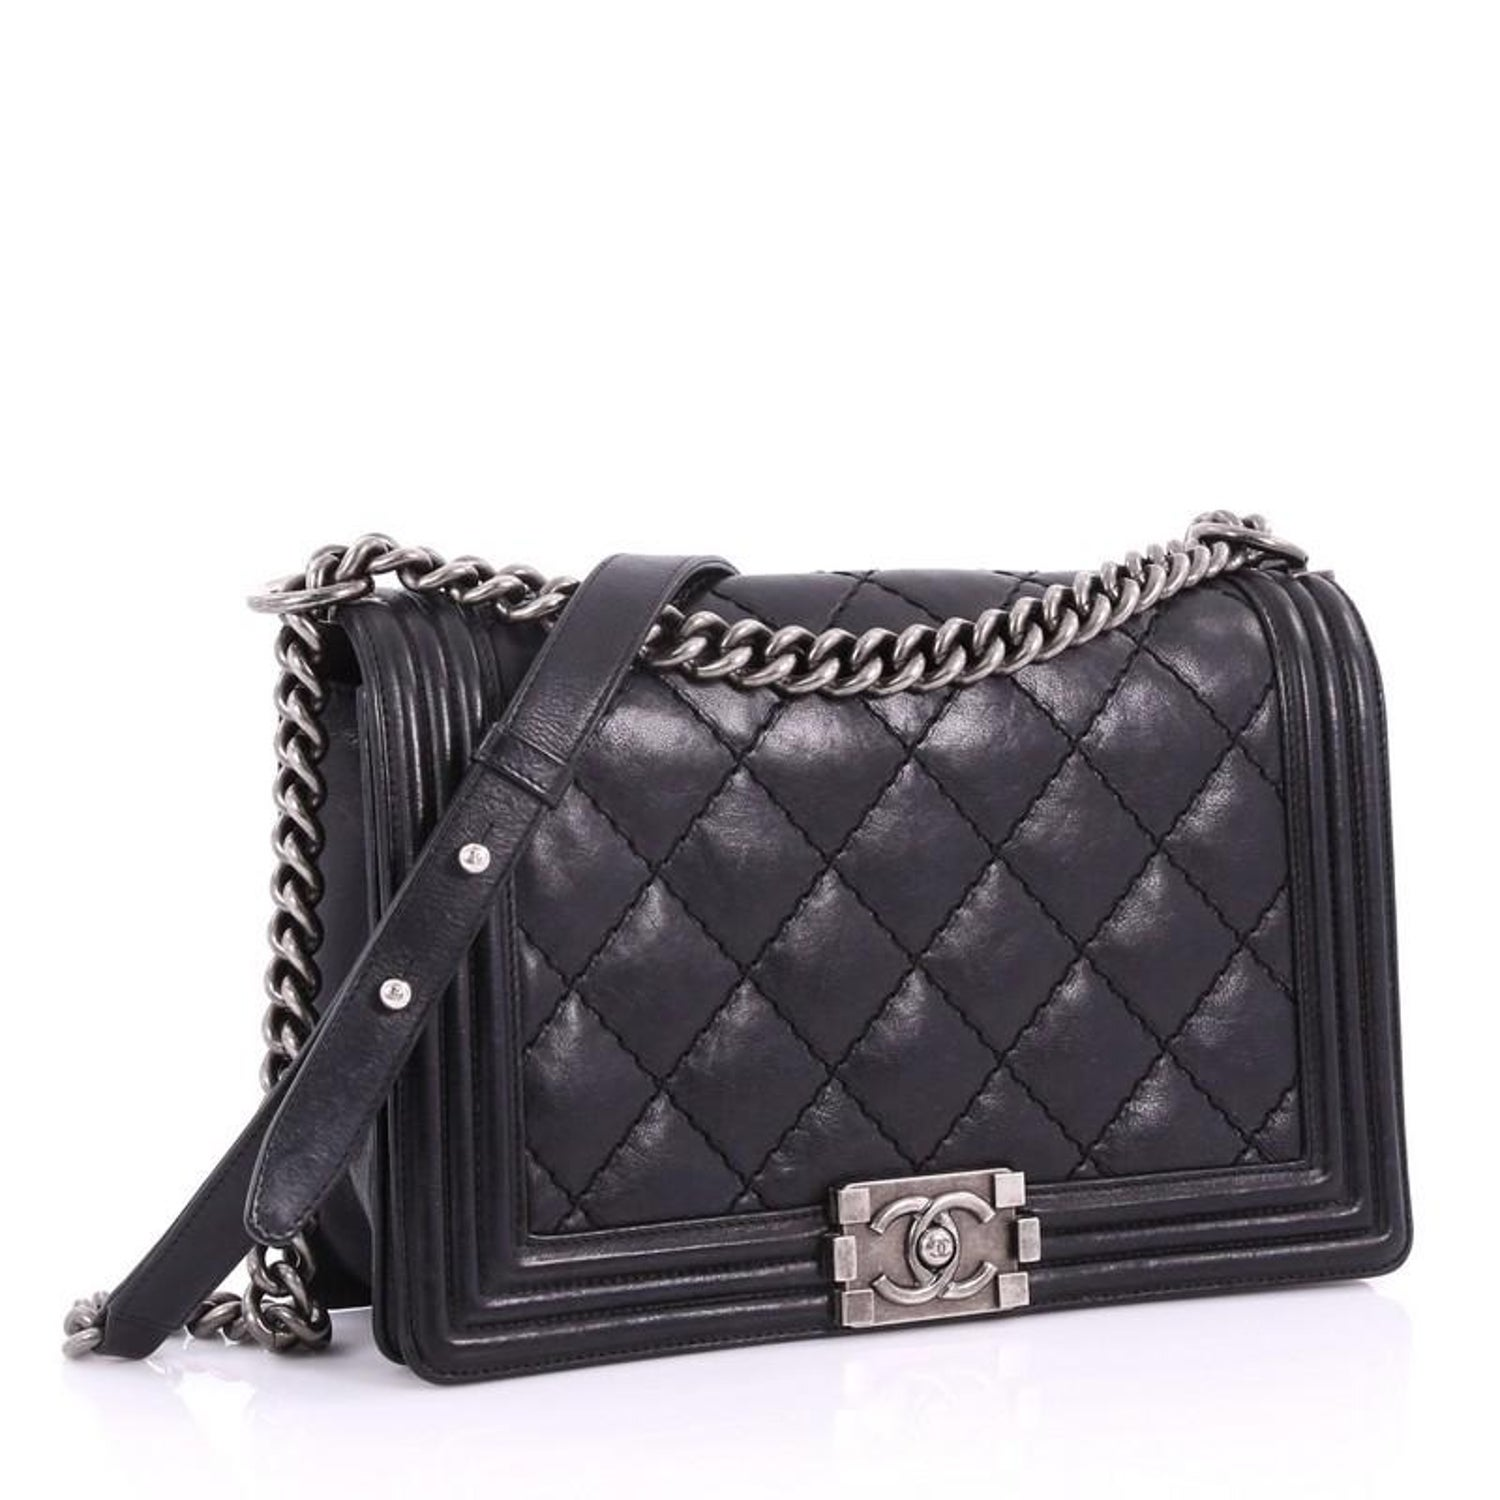 3e0a6eed9aa8 Chanel Stitch Boy Flap Bag Quilted Calfskin New Medium at 1stdibs